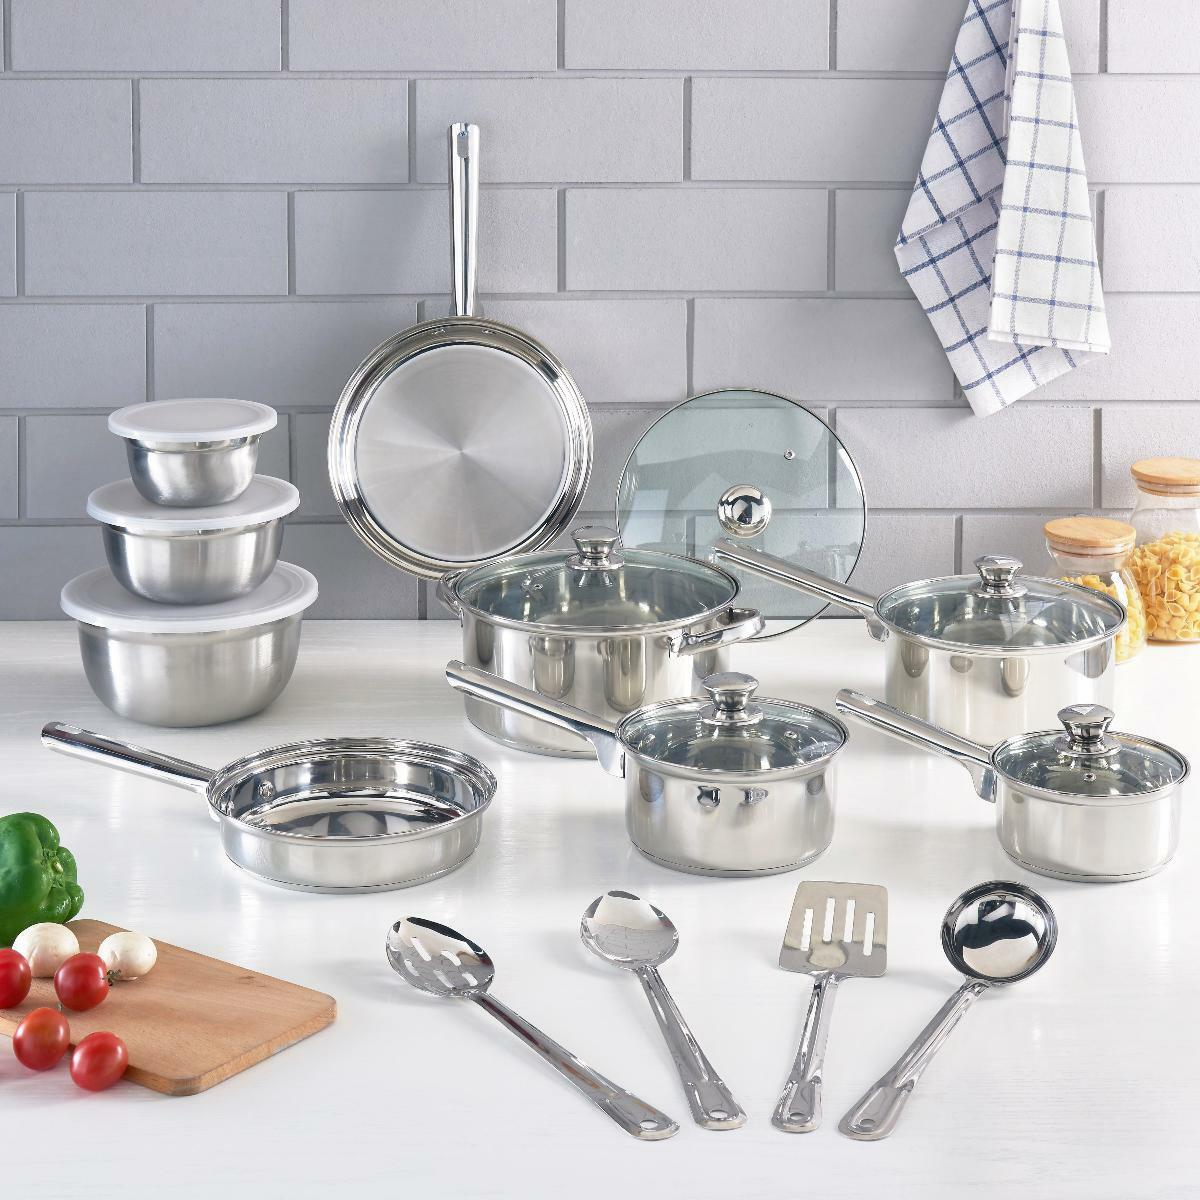 Cookware Set Stainless Steel Kitchen Tools Quality Pots Pans